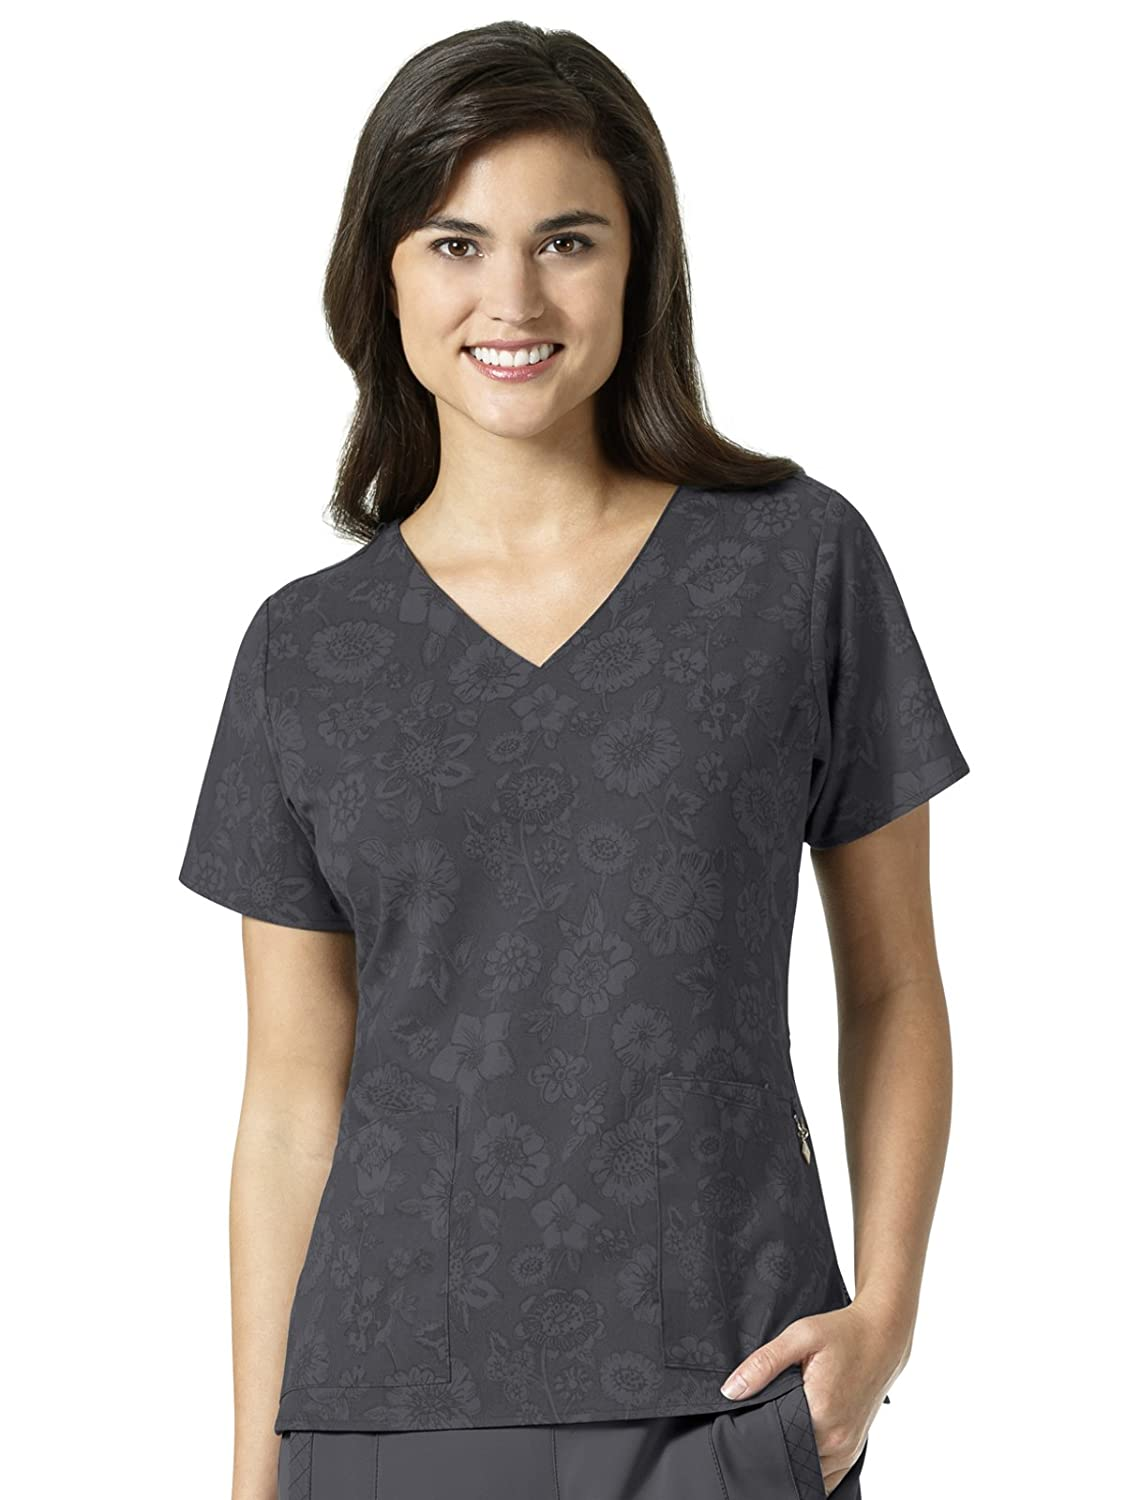 52cf29103a7 Amazon.com: Vera Bradley Halo Collection Women's Nettie V-Neck Print Scrub  Top: Clothing